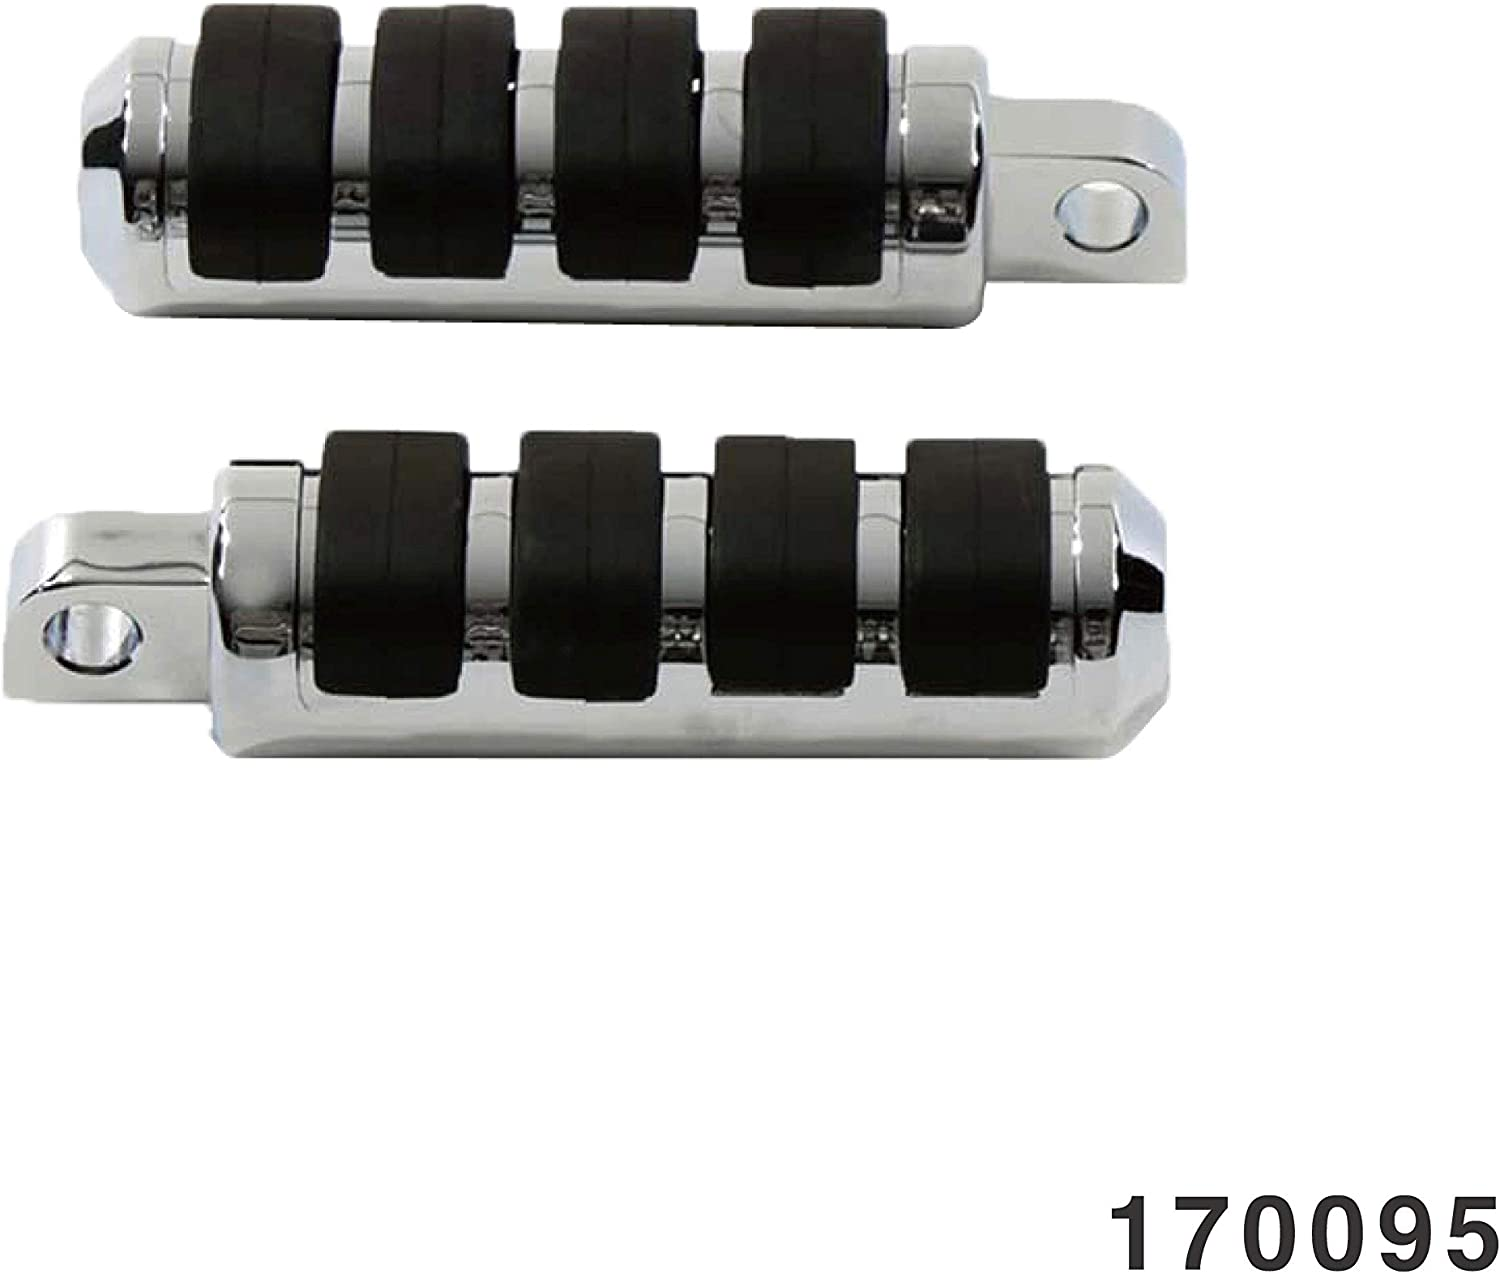 FOOTPEG CHR FANGSTER ISO STYLE FOOTPEG SET